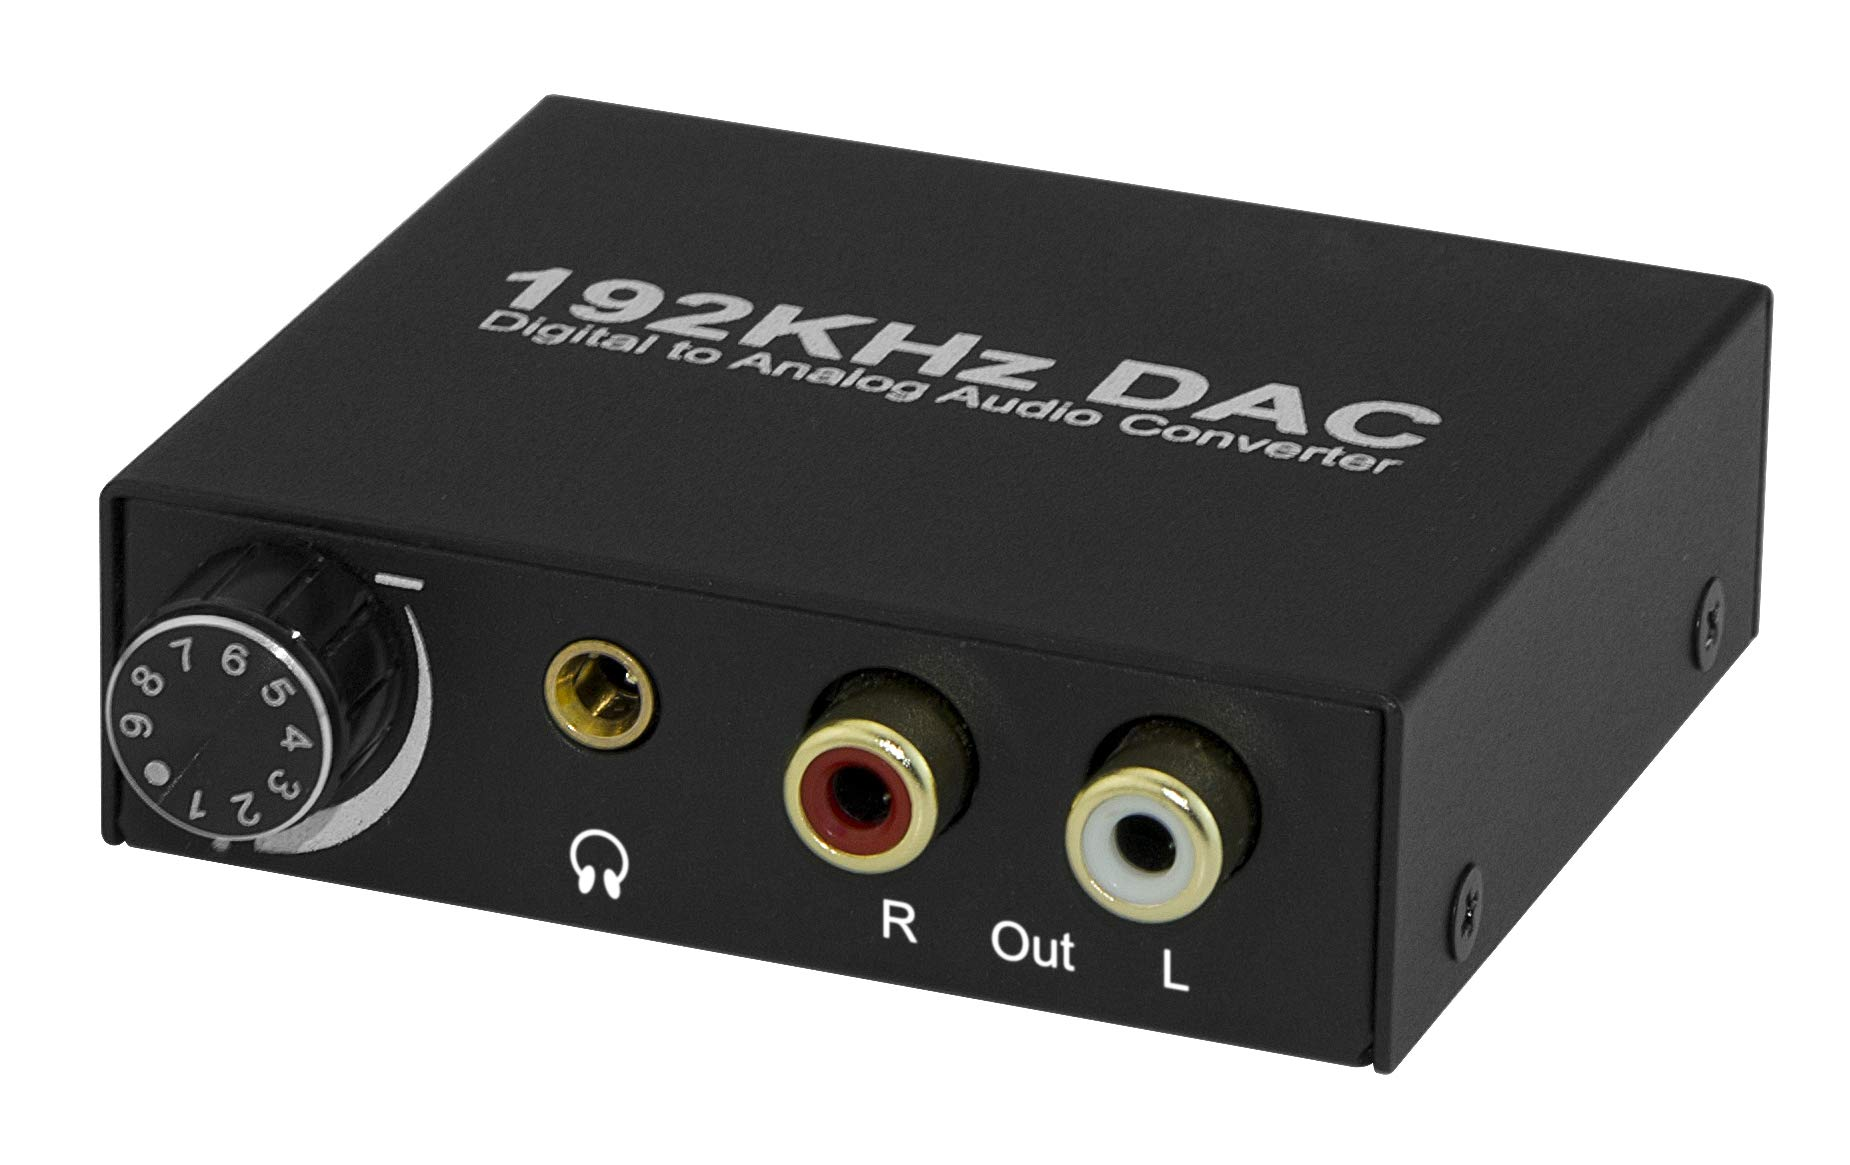 XtremPro 192KHz DAC Converter, 24bit Digital to Analog Audio Converter, Volume Control, Optical, Coaxial, Toslink To Analog, 3.5mm Audio Headphone Amplifier & Mini Stereo Pre-Amplifier - Black (61089)